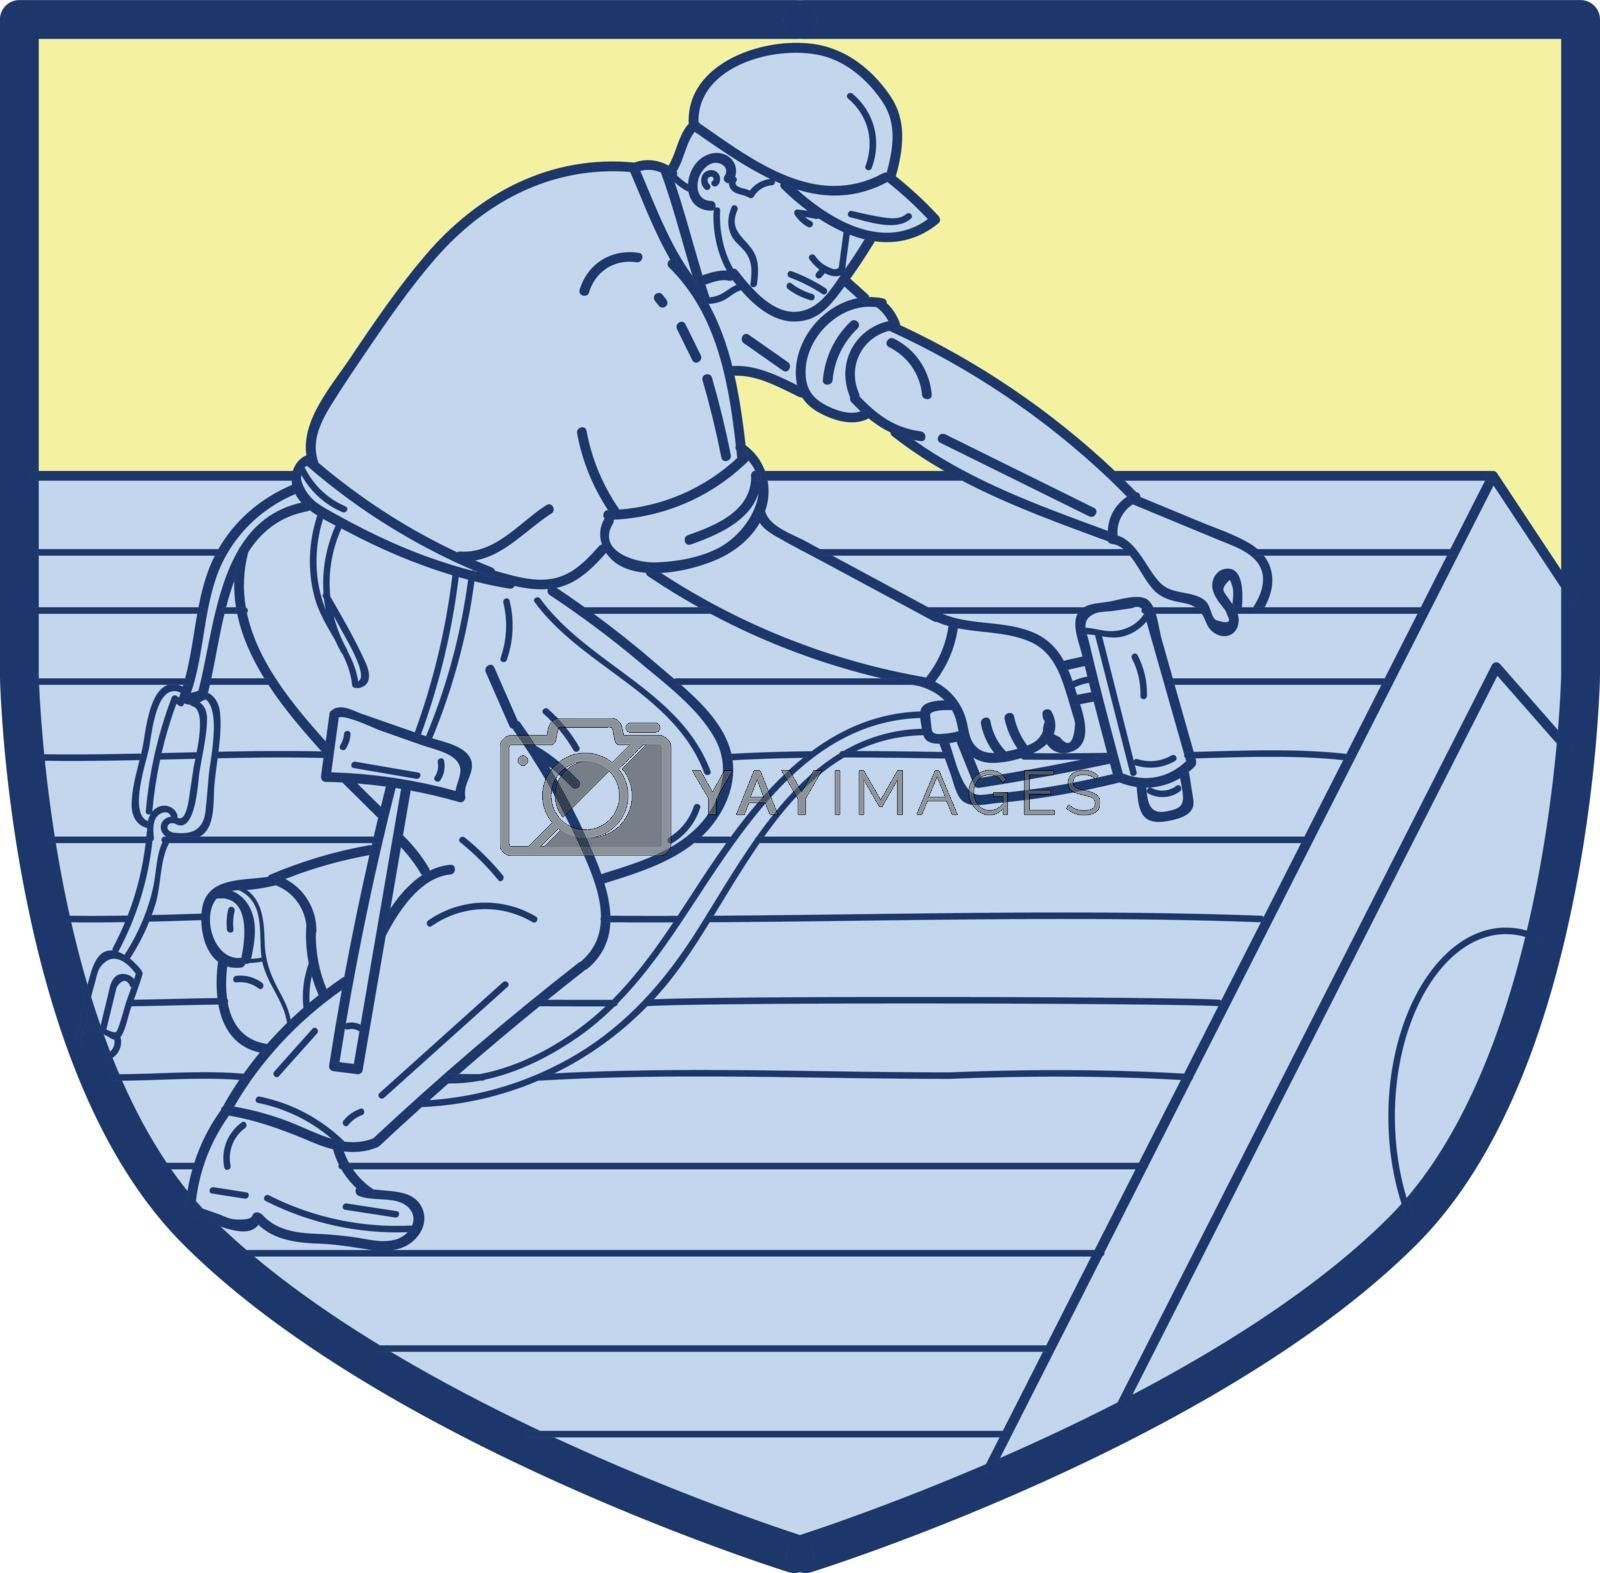 Mono line style illustration of a roofer construction worker wearing hat working on roof with hand drill viewed from the side set inside shield crest.